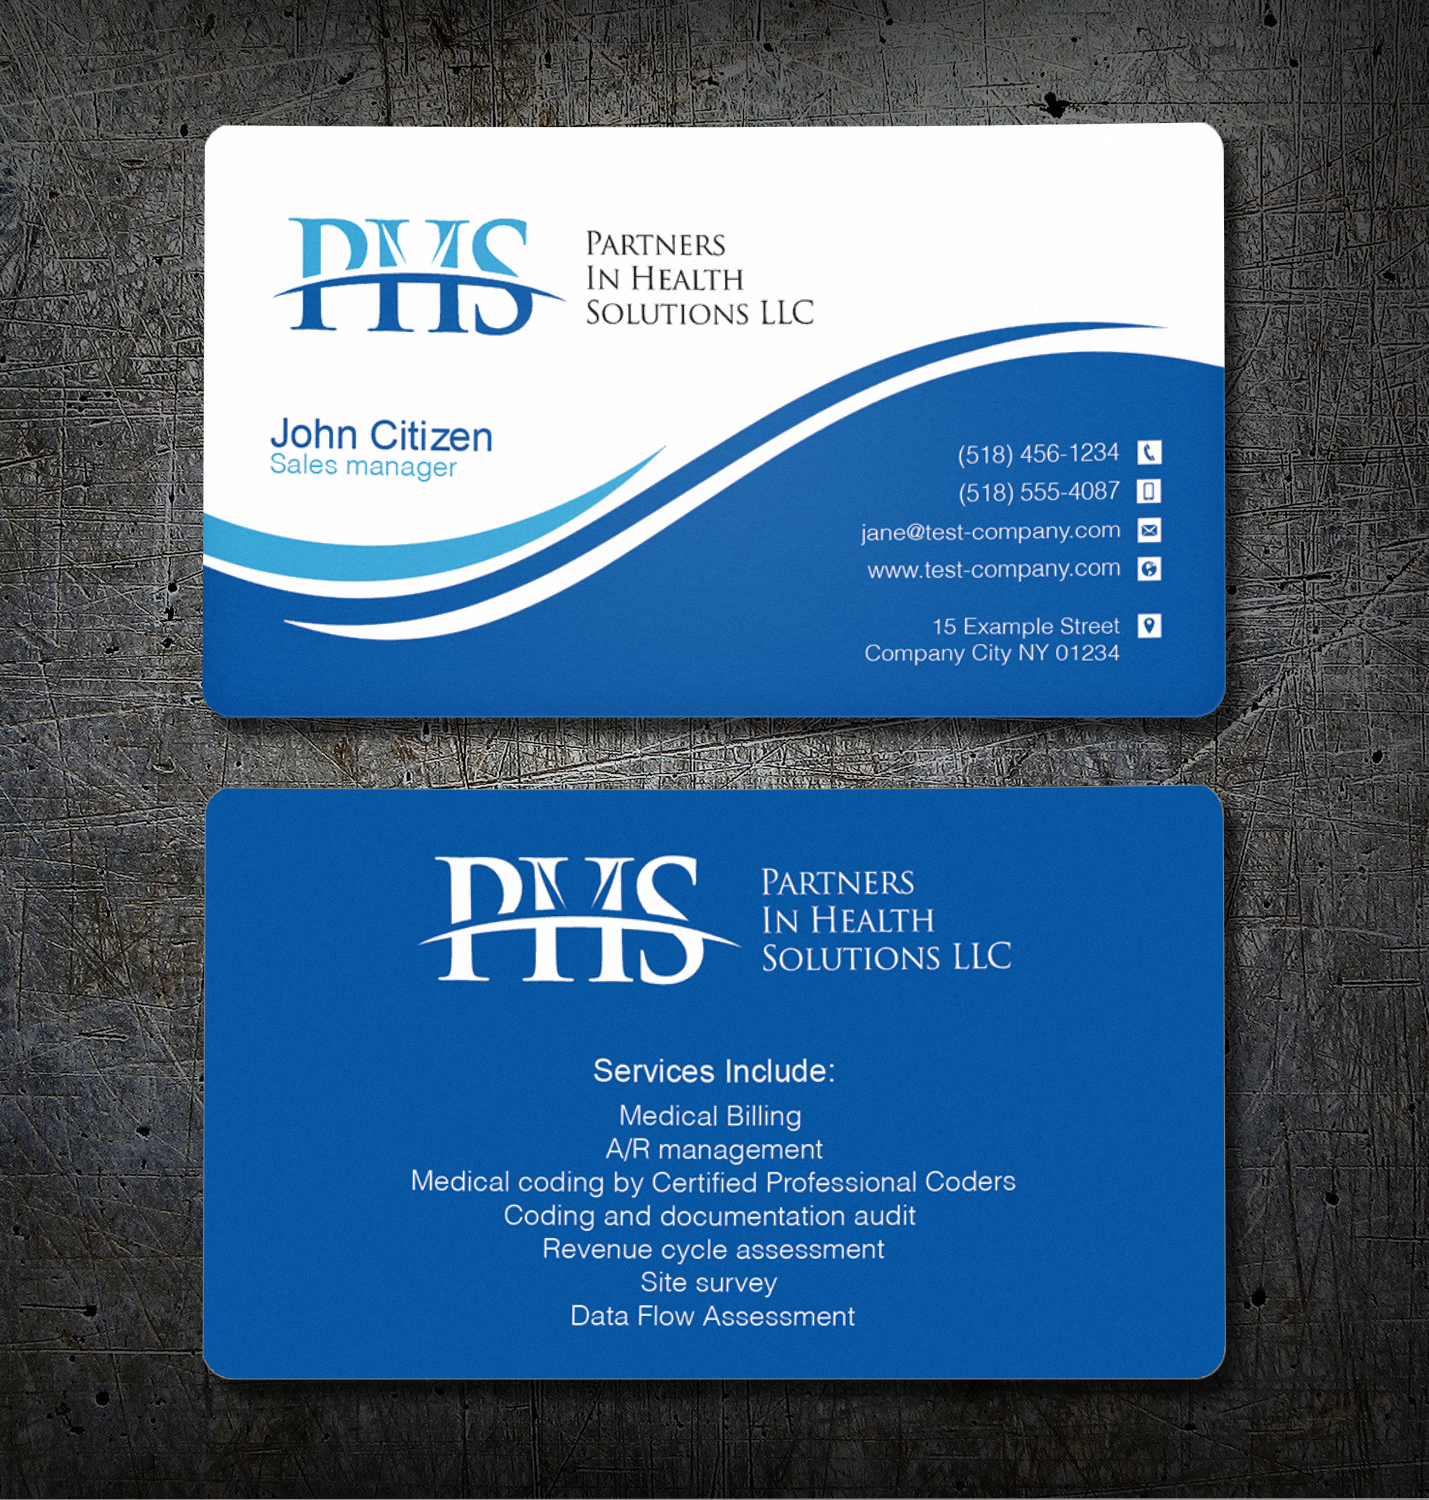 Business Card Design By Creation Lanka For Partners In Health Solutions LLC